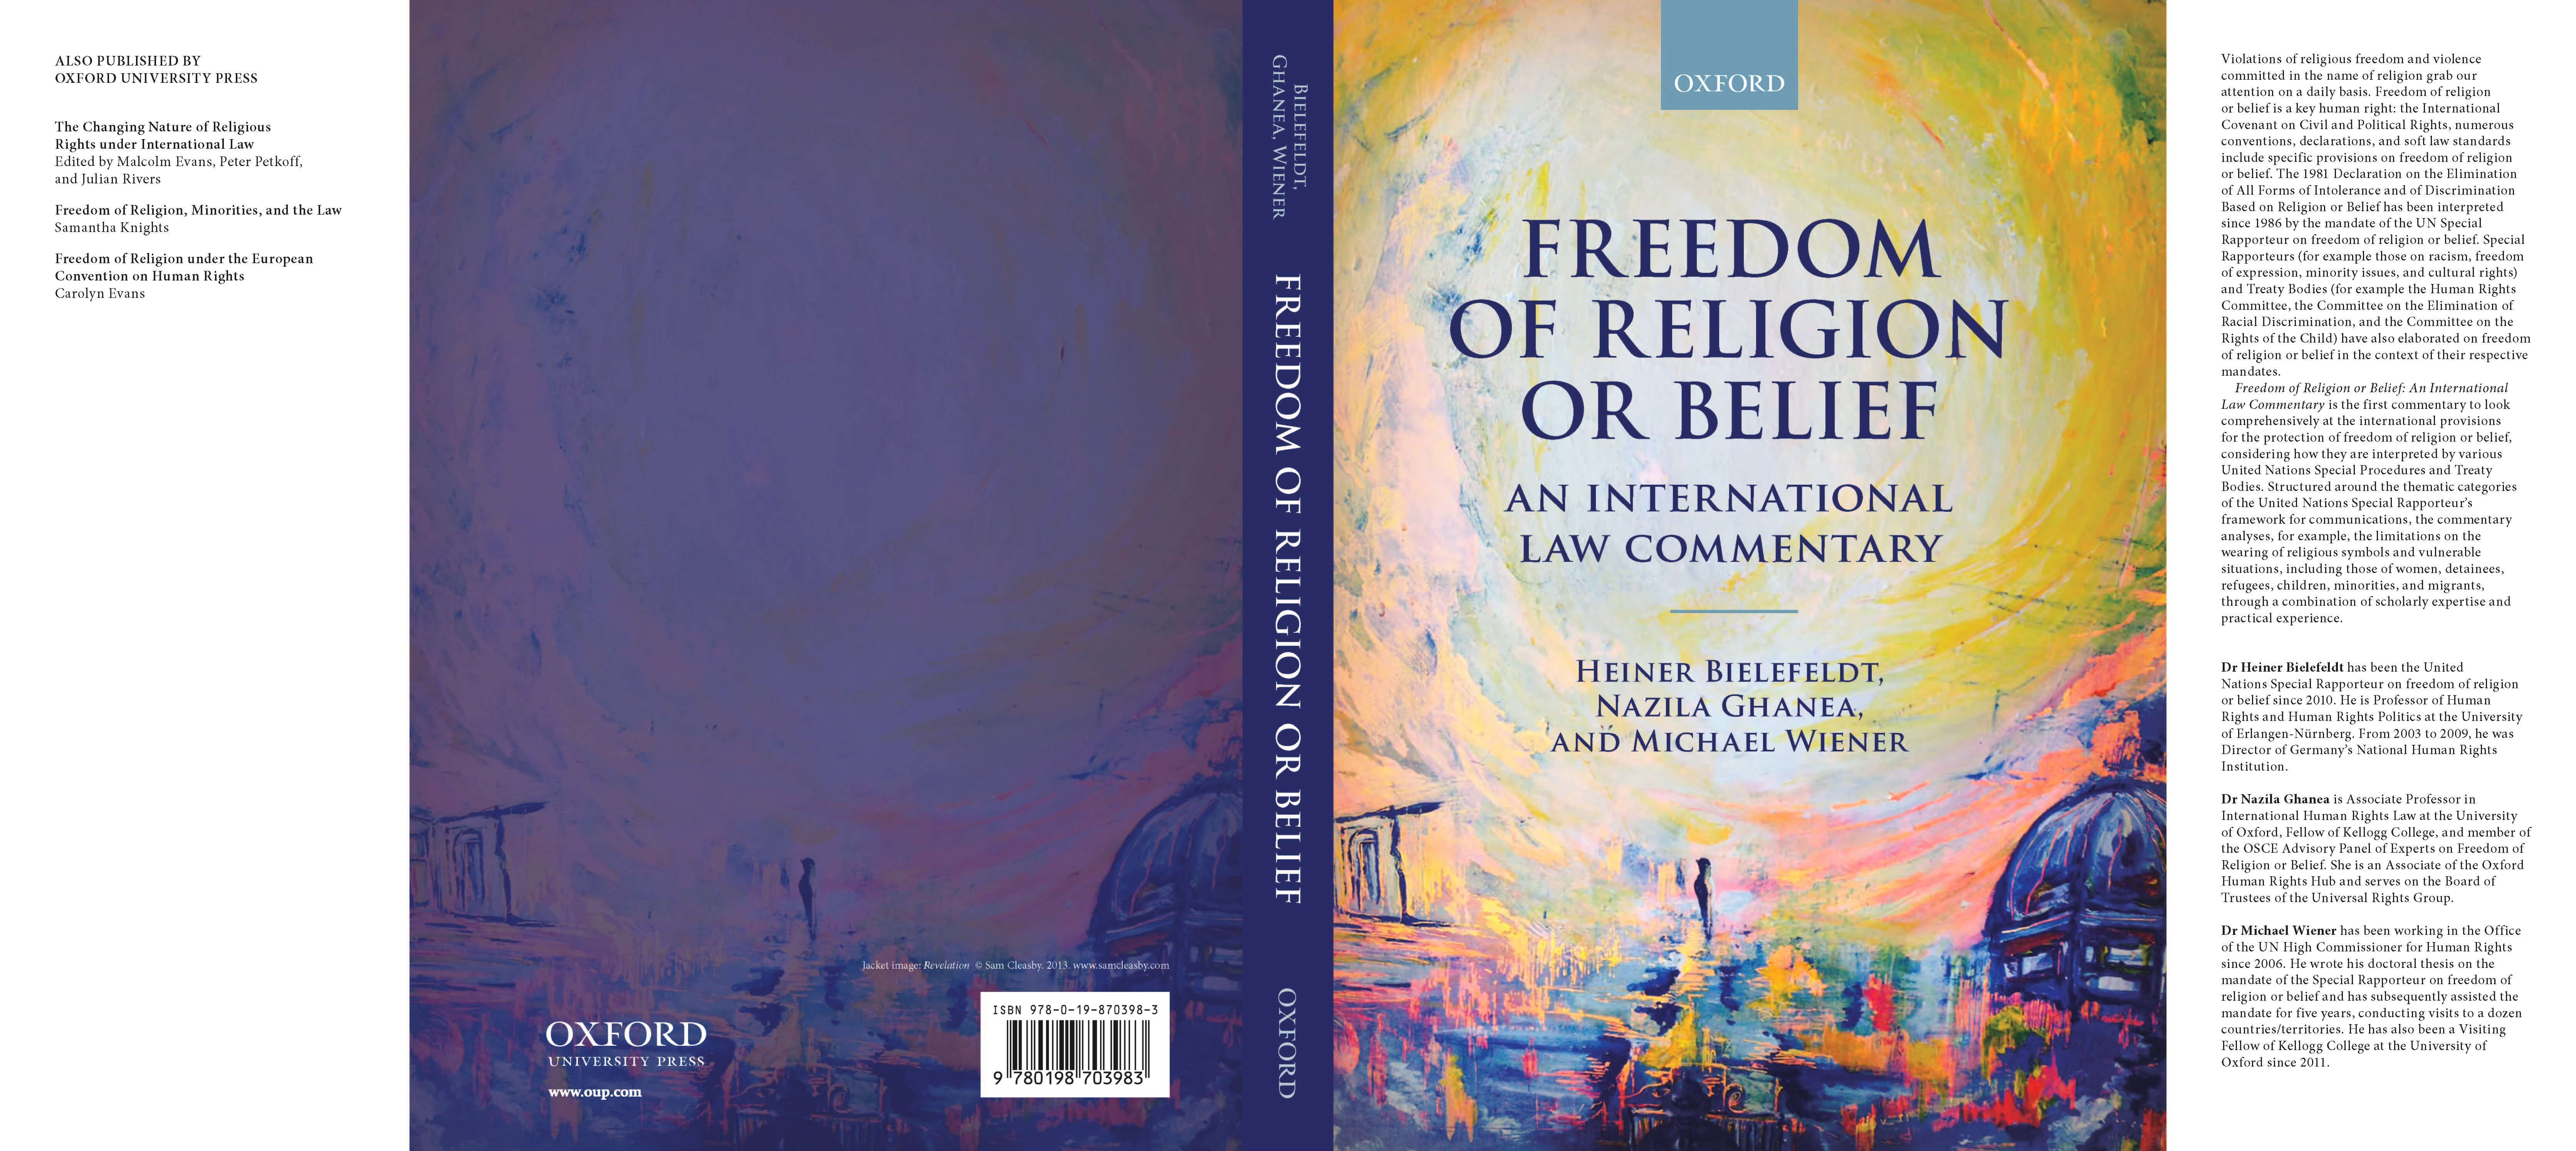 New Publication: Freedom of Religion and Belief: An International Law Commentary by Heiner Bielefeldt, Nazila Ghanea, and Michael Wiener